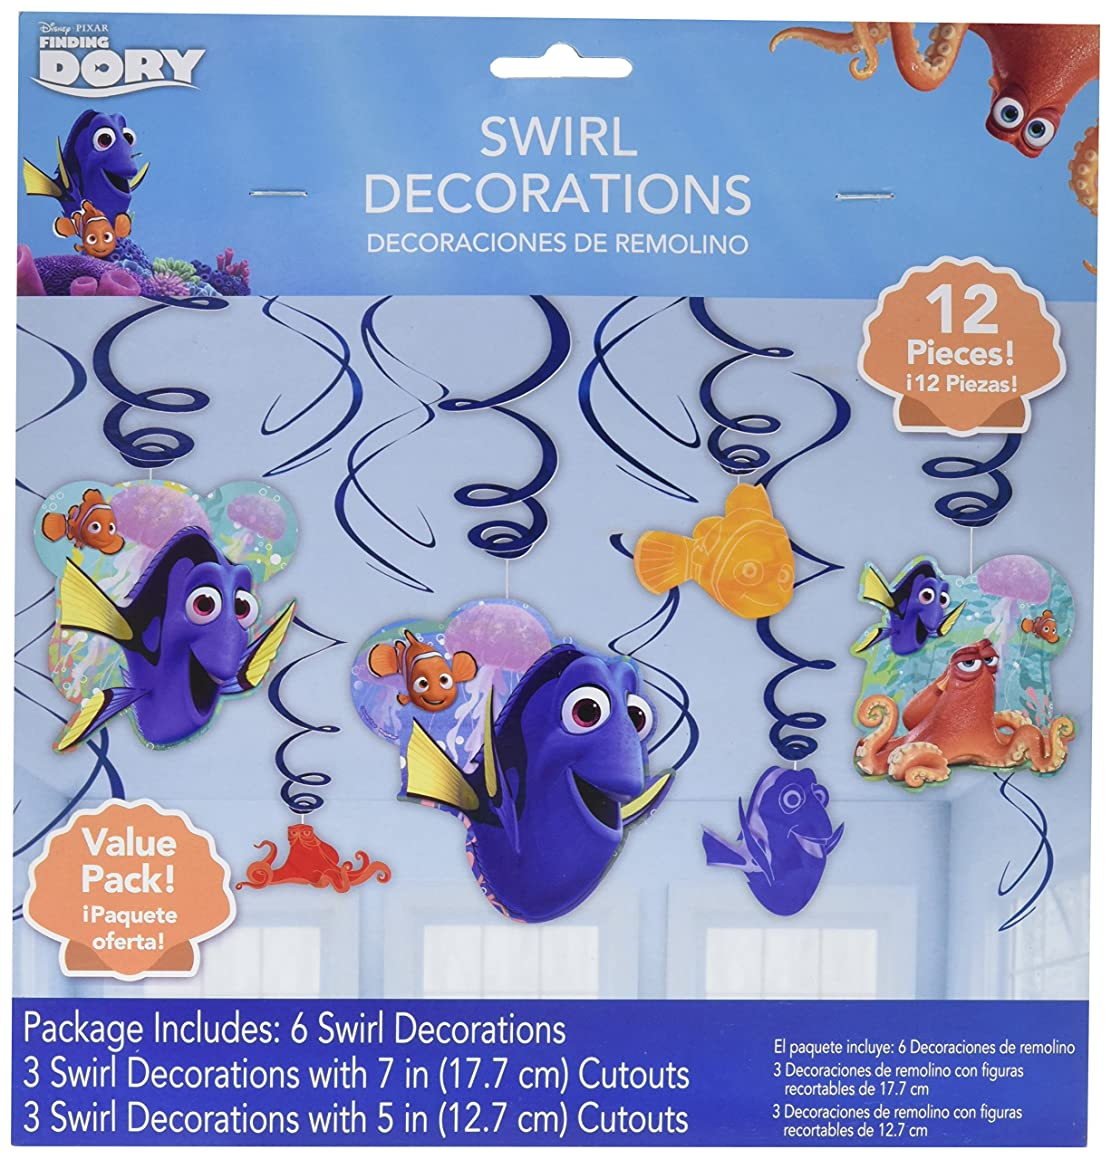 Foil Swirl Decorations | Disney /Pixar Finding Dory Collection | Party Accessory